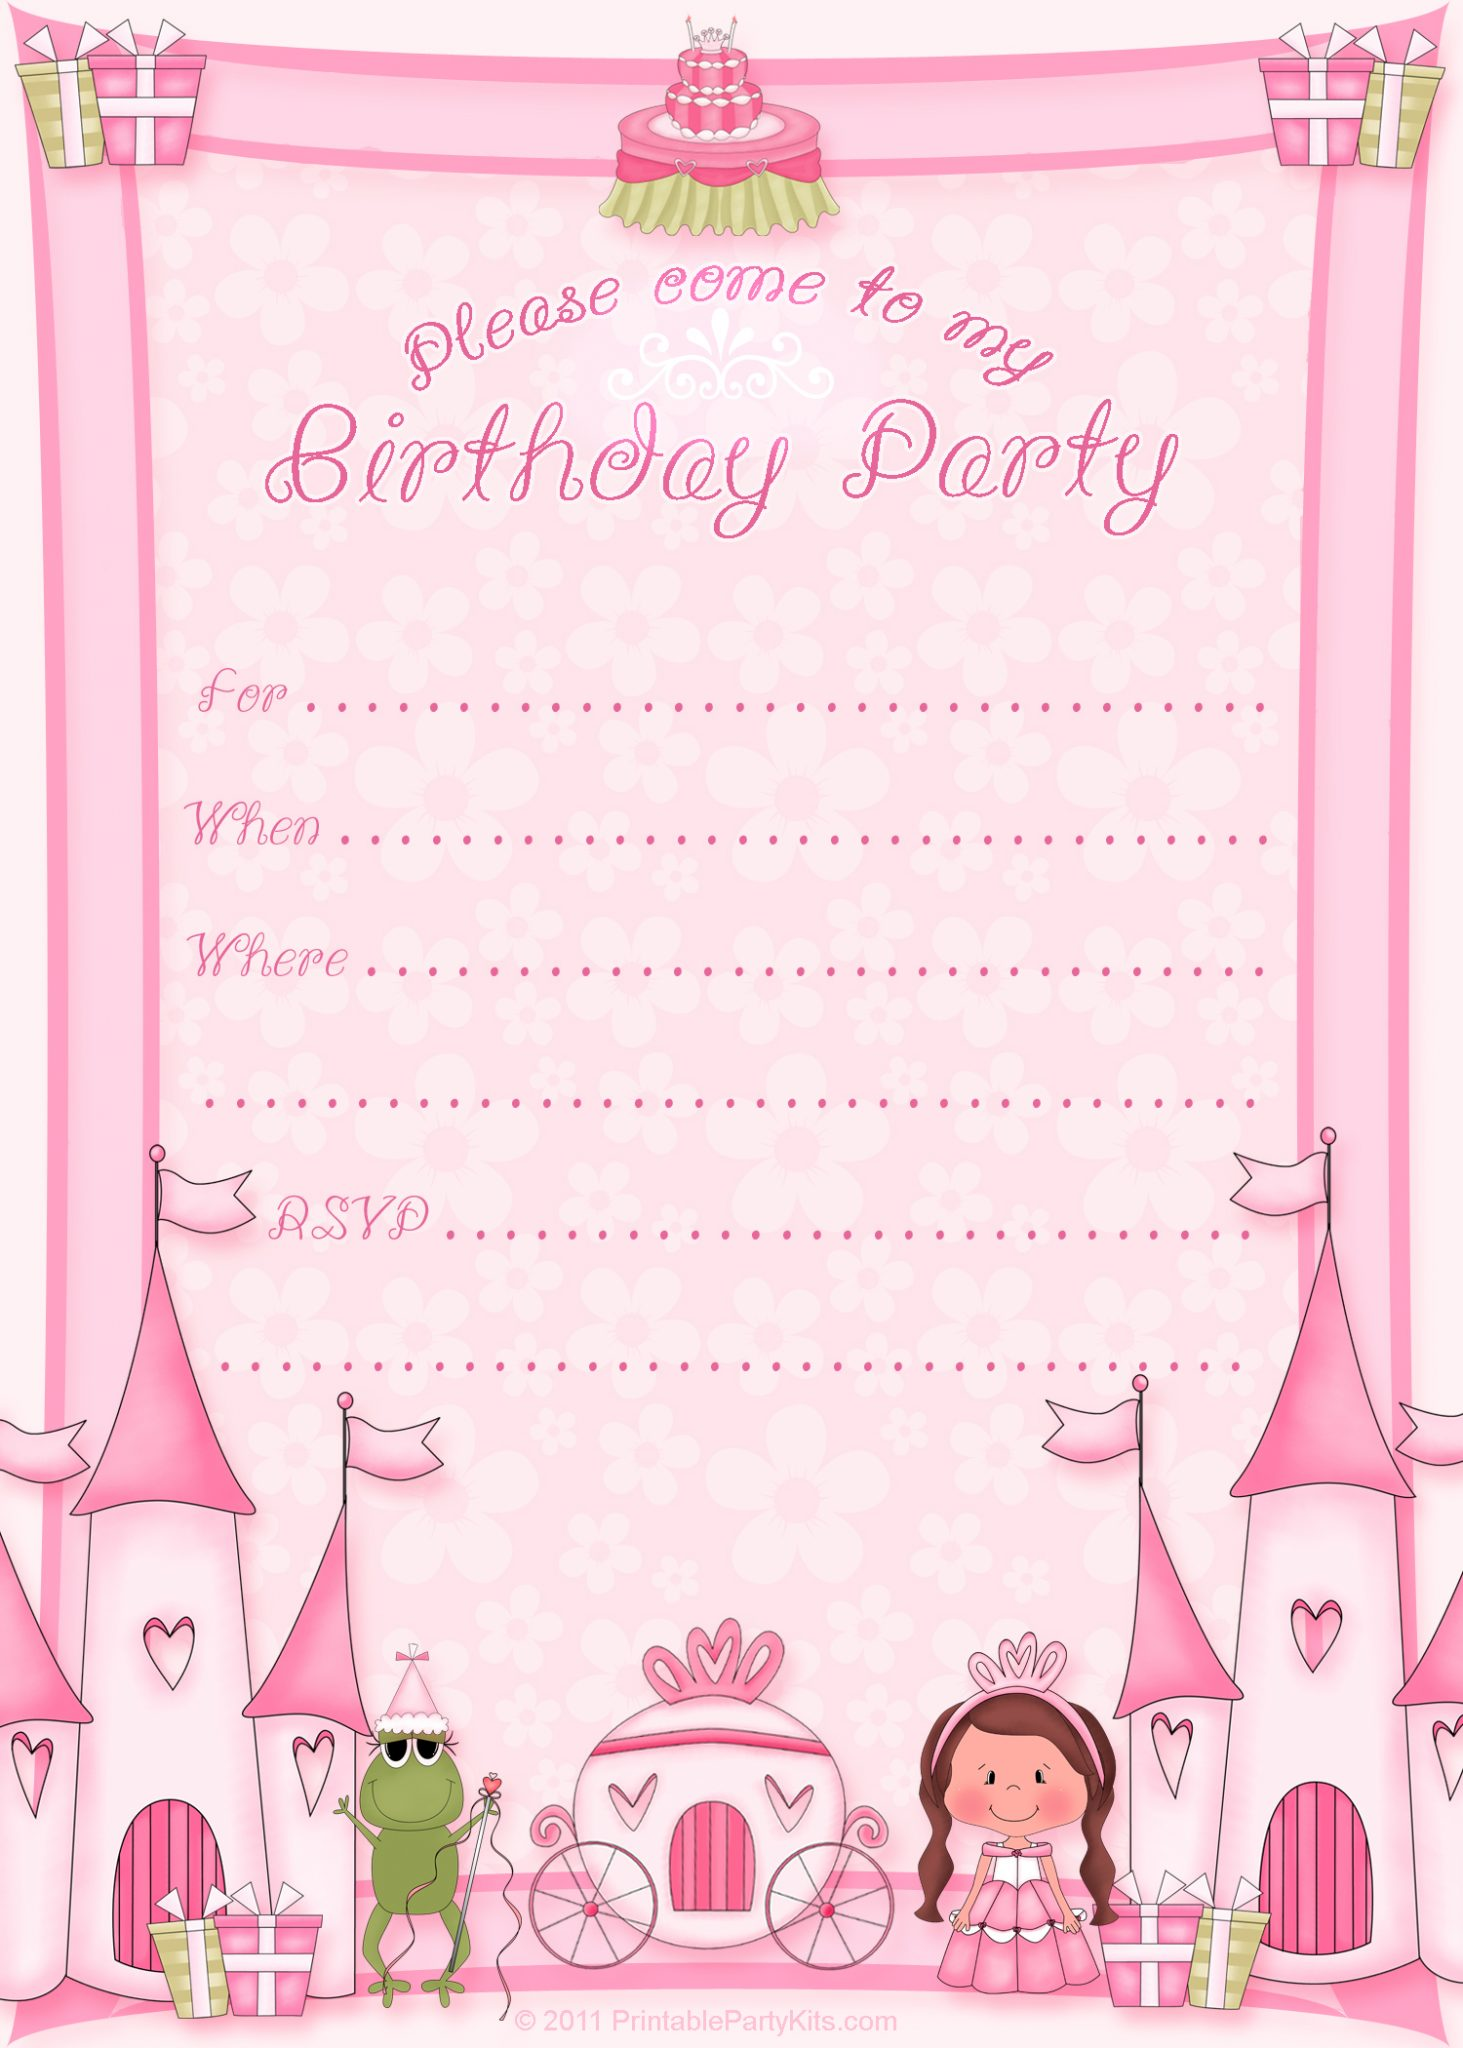 Free Birthday Invitation Templates You Will Love These - Birthday invitation templates to download free